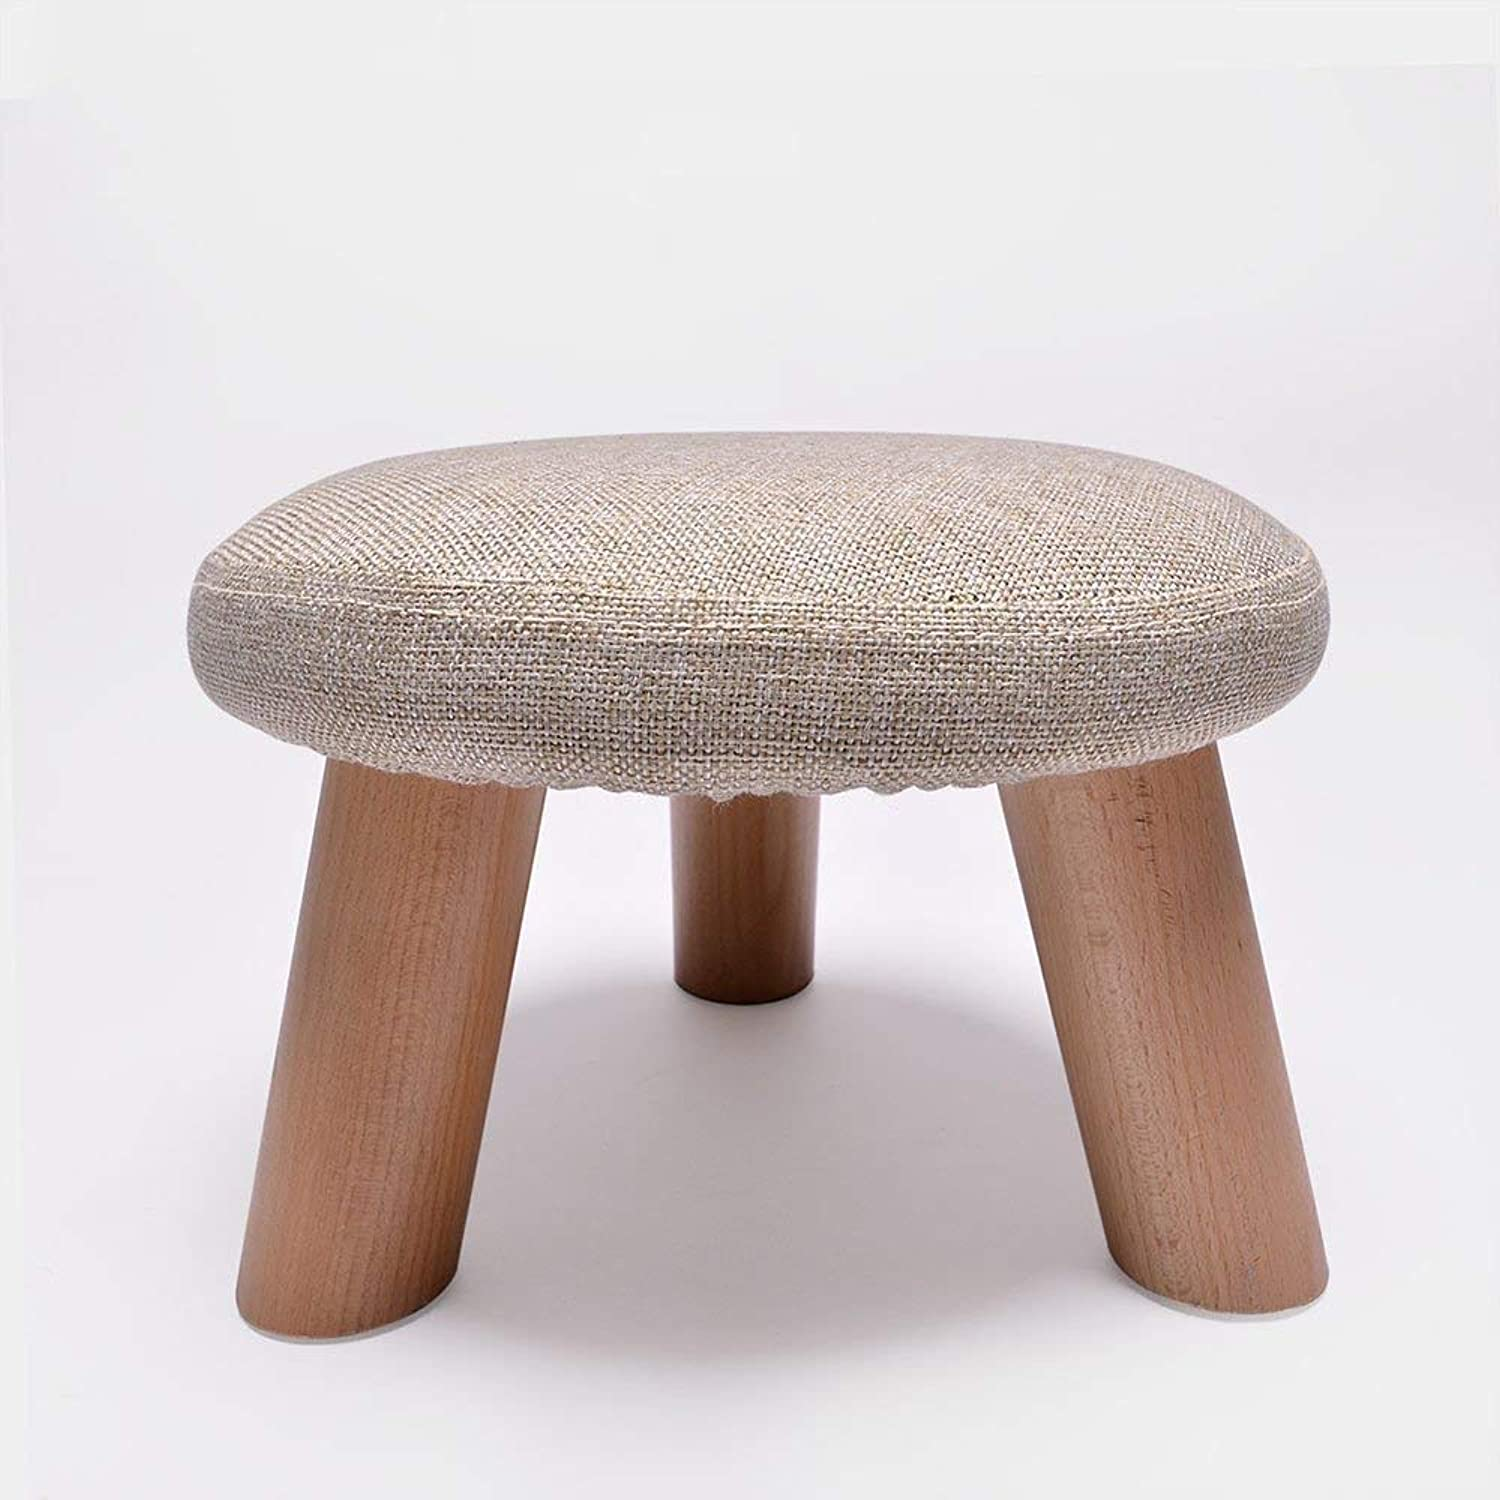 WSJTT Round Wood Support Upholstered Footstool Chair Stool Fabric Cover 3 Legs and Removable Linen Cover